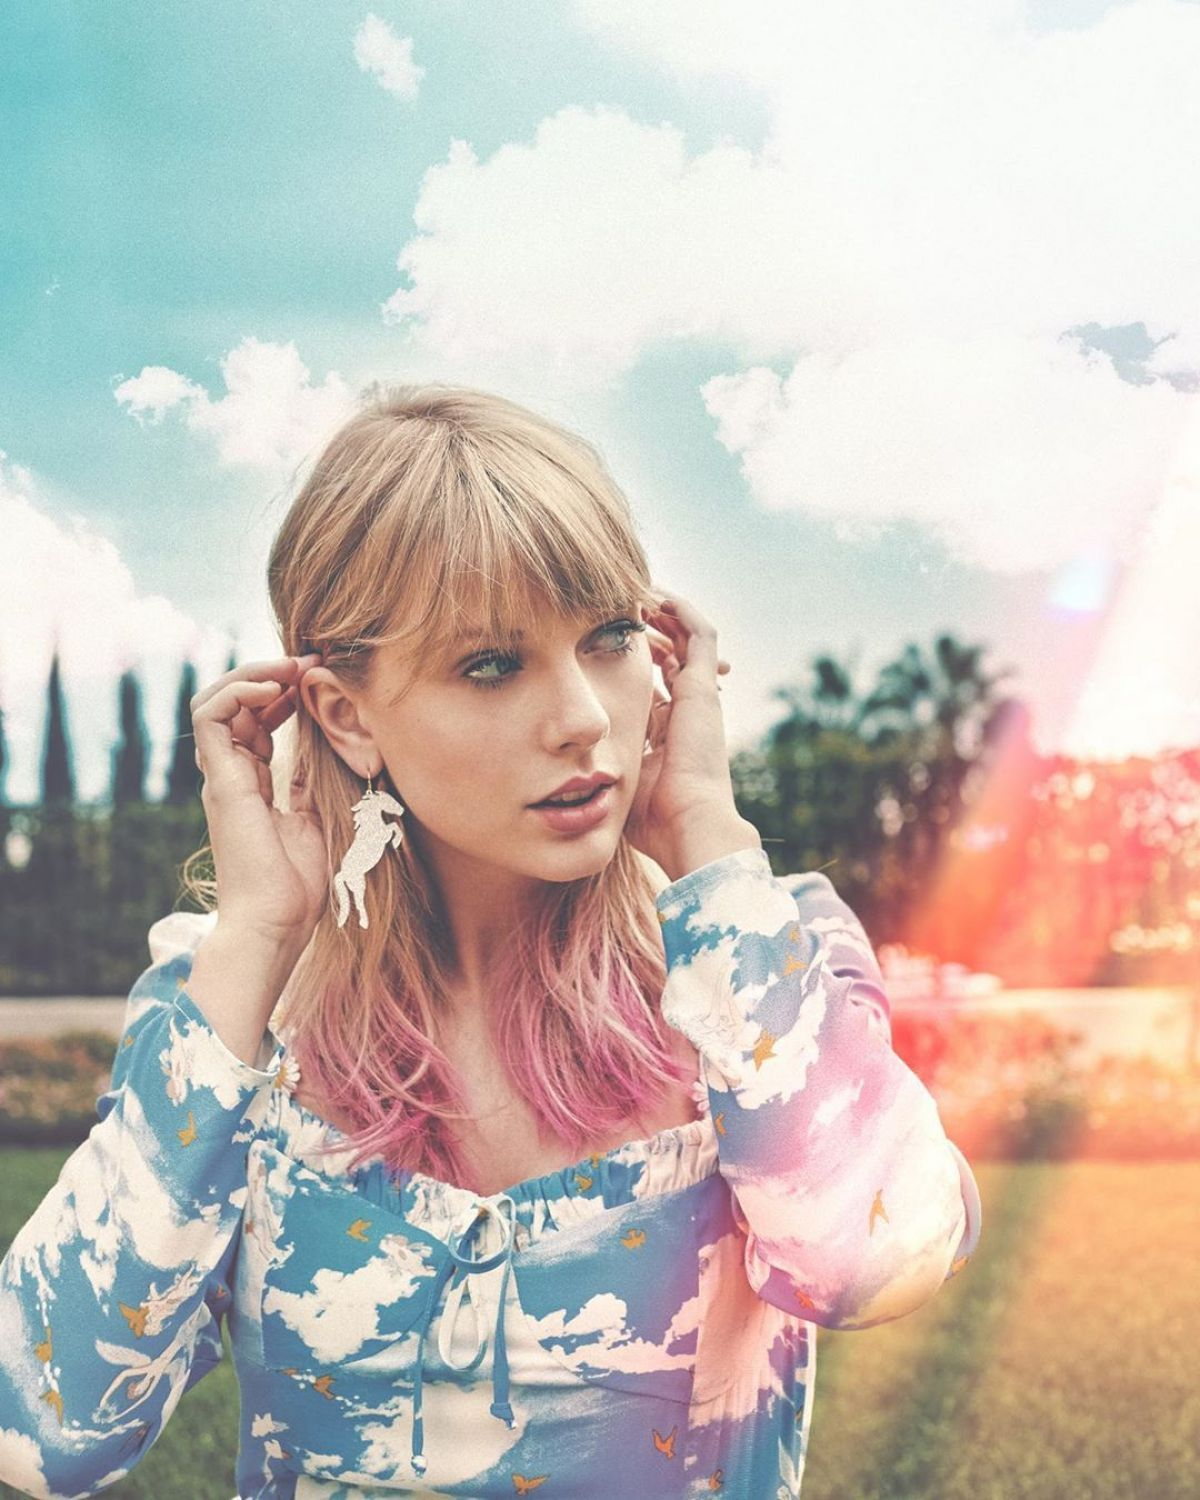 taylor swift lover - photo #5